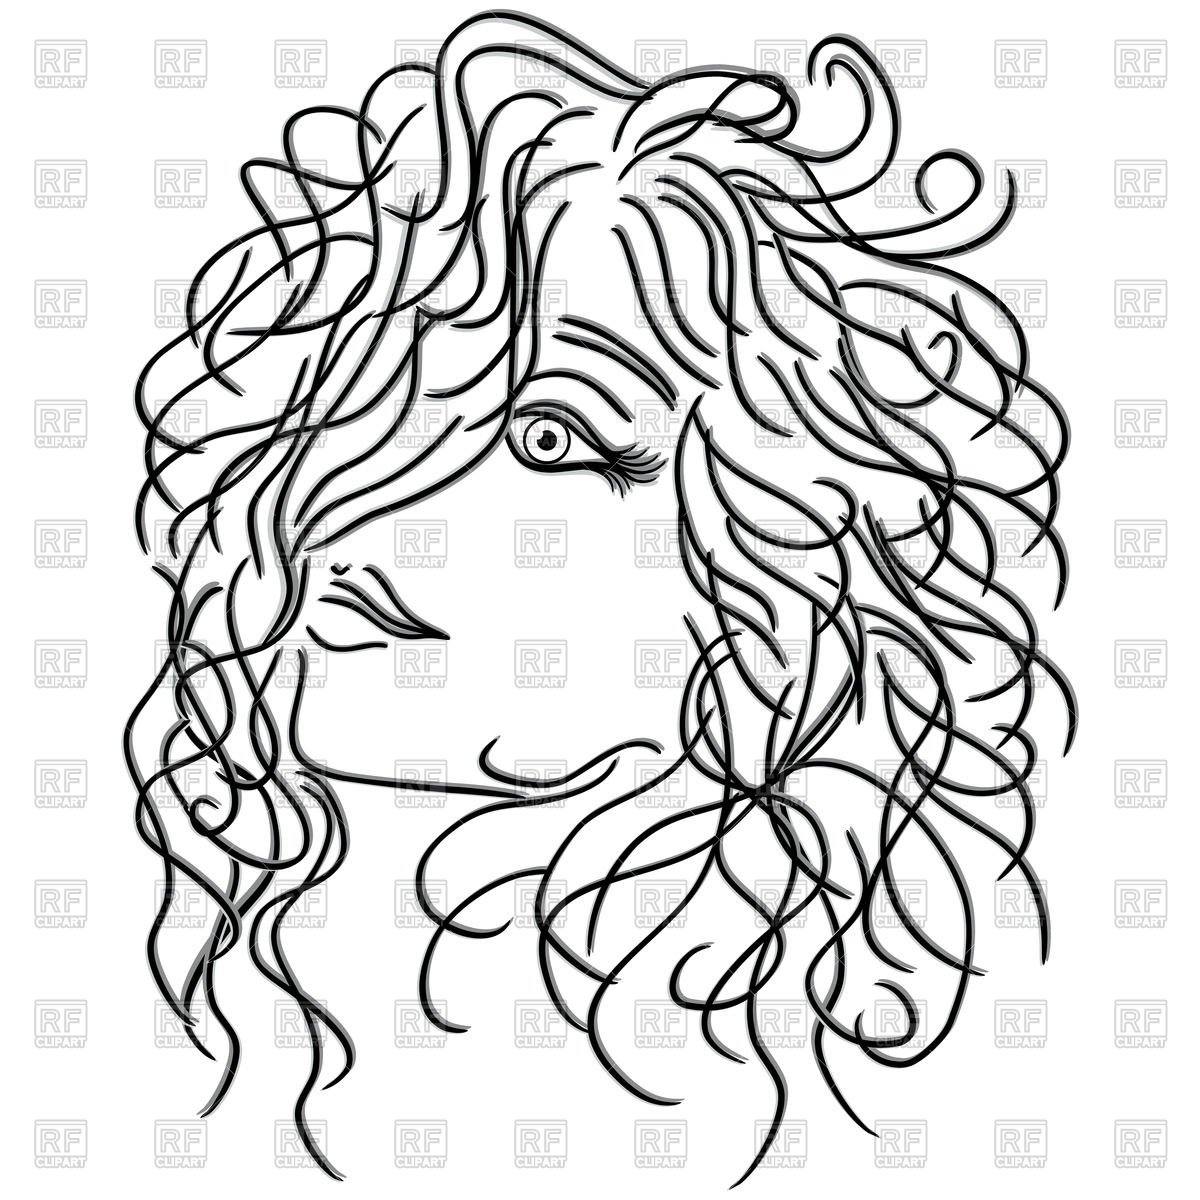 1200x1200 Girl With Flowing Curly Hair, Sketch Royalty Free Vector Clip Art